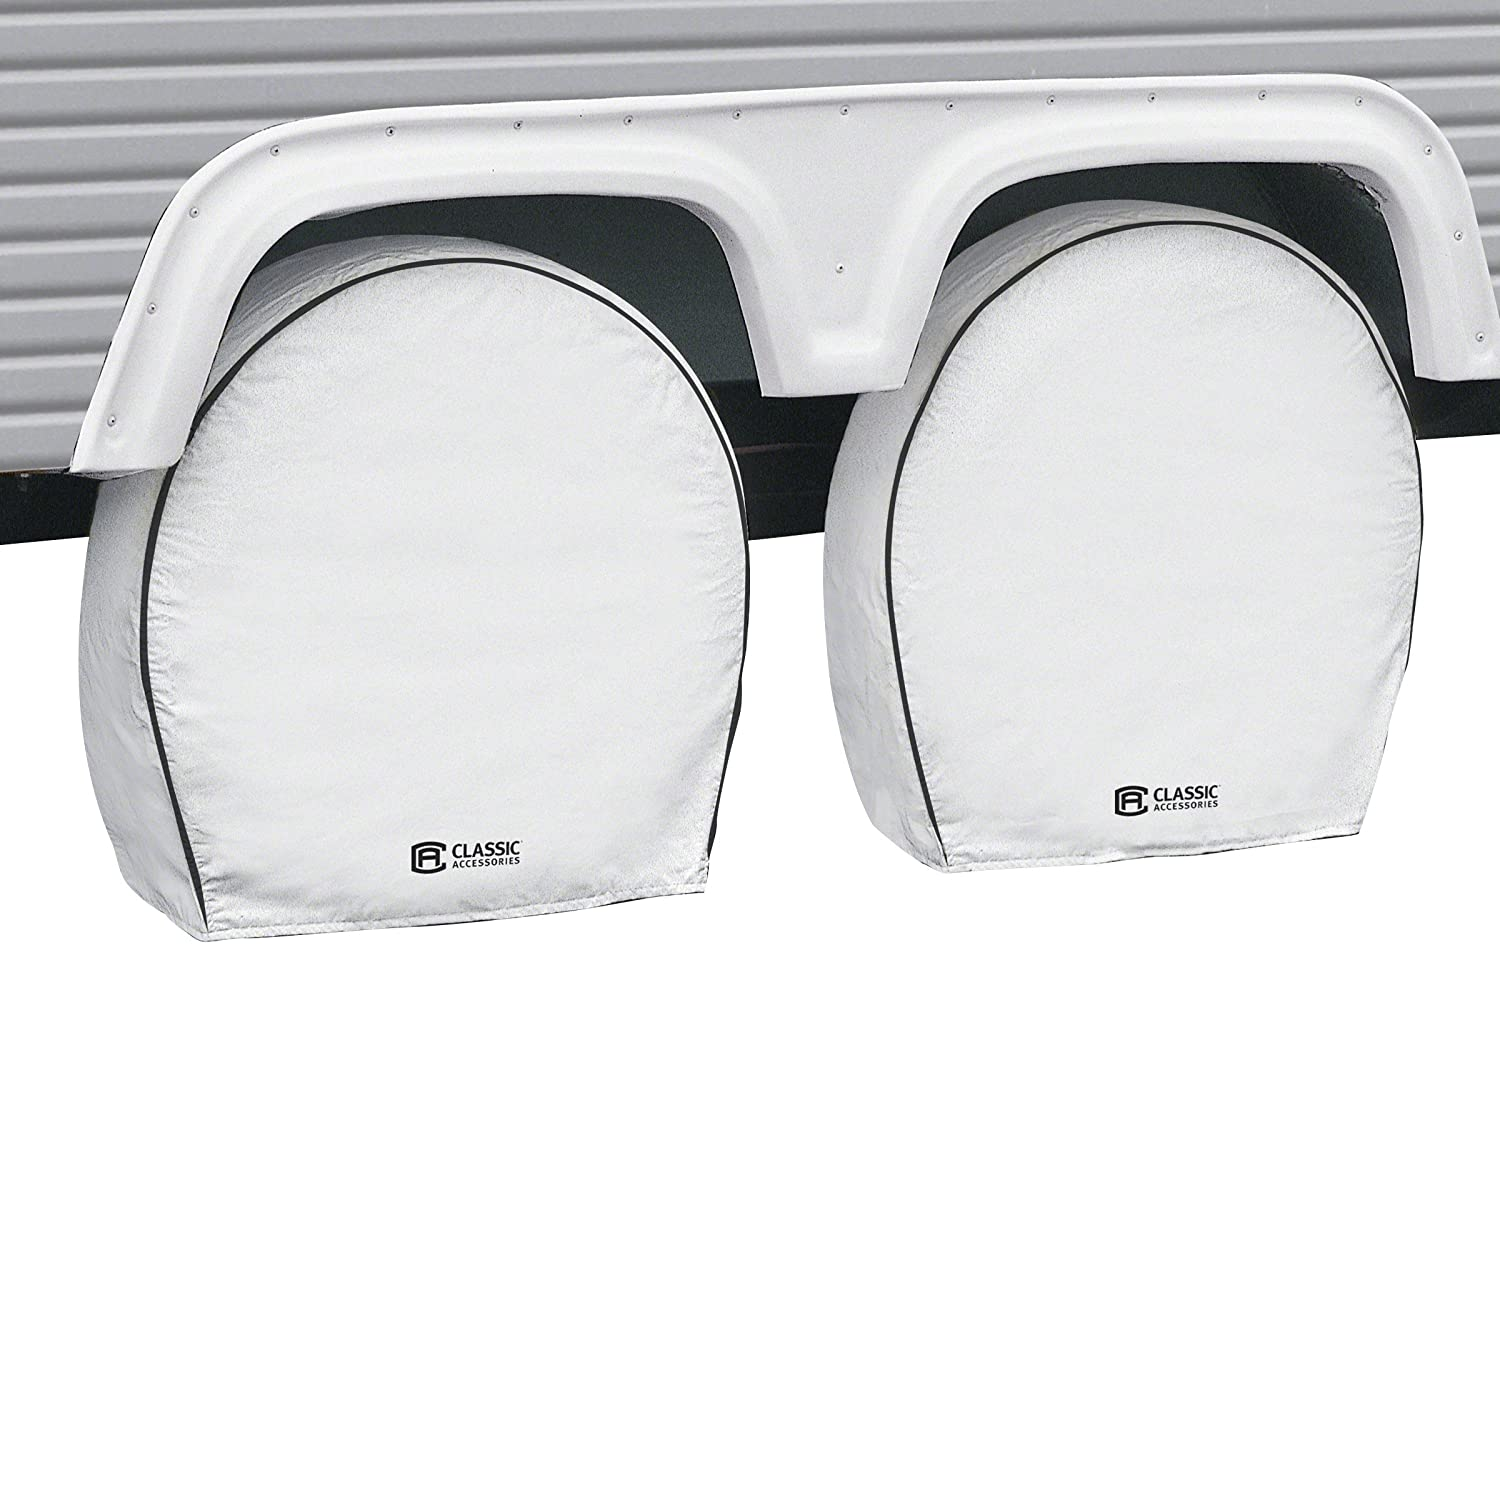 Classic Accessories 80-221-152302-00 White 26.75' - 29' Diameter x 8.5' Width RV Deluxe Wheel Cover, (Pack of 4)